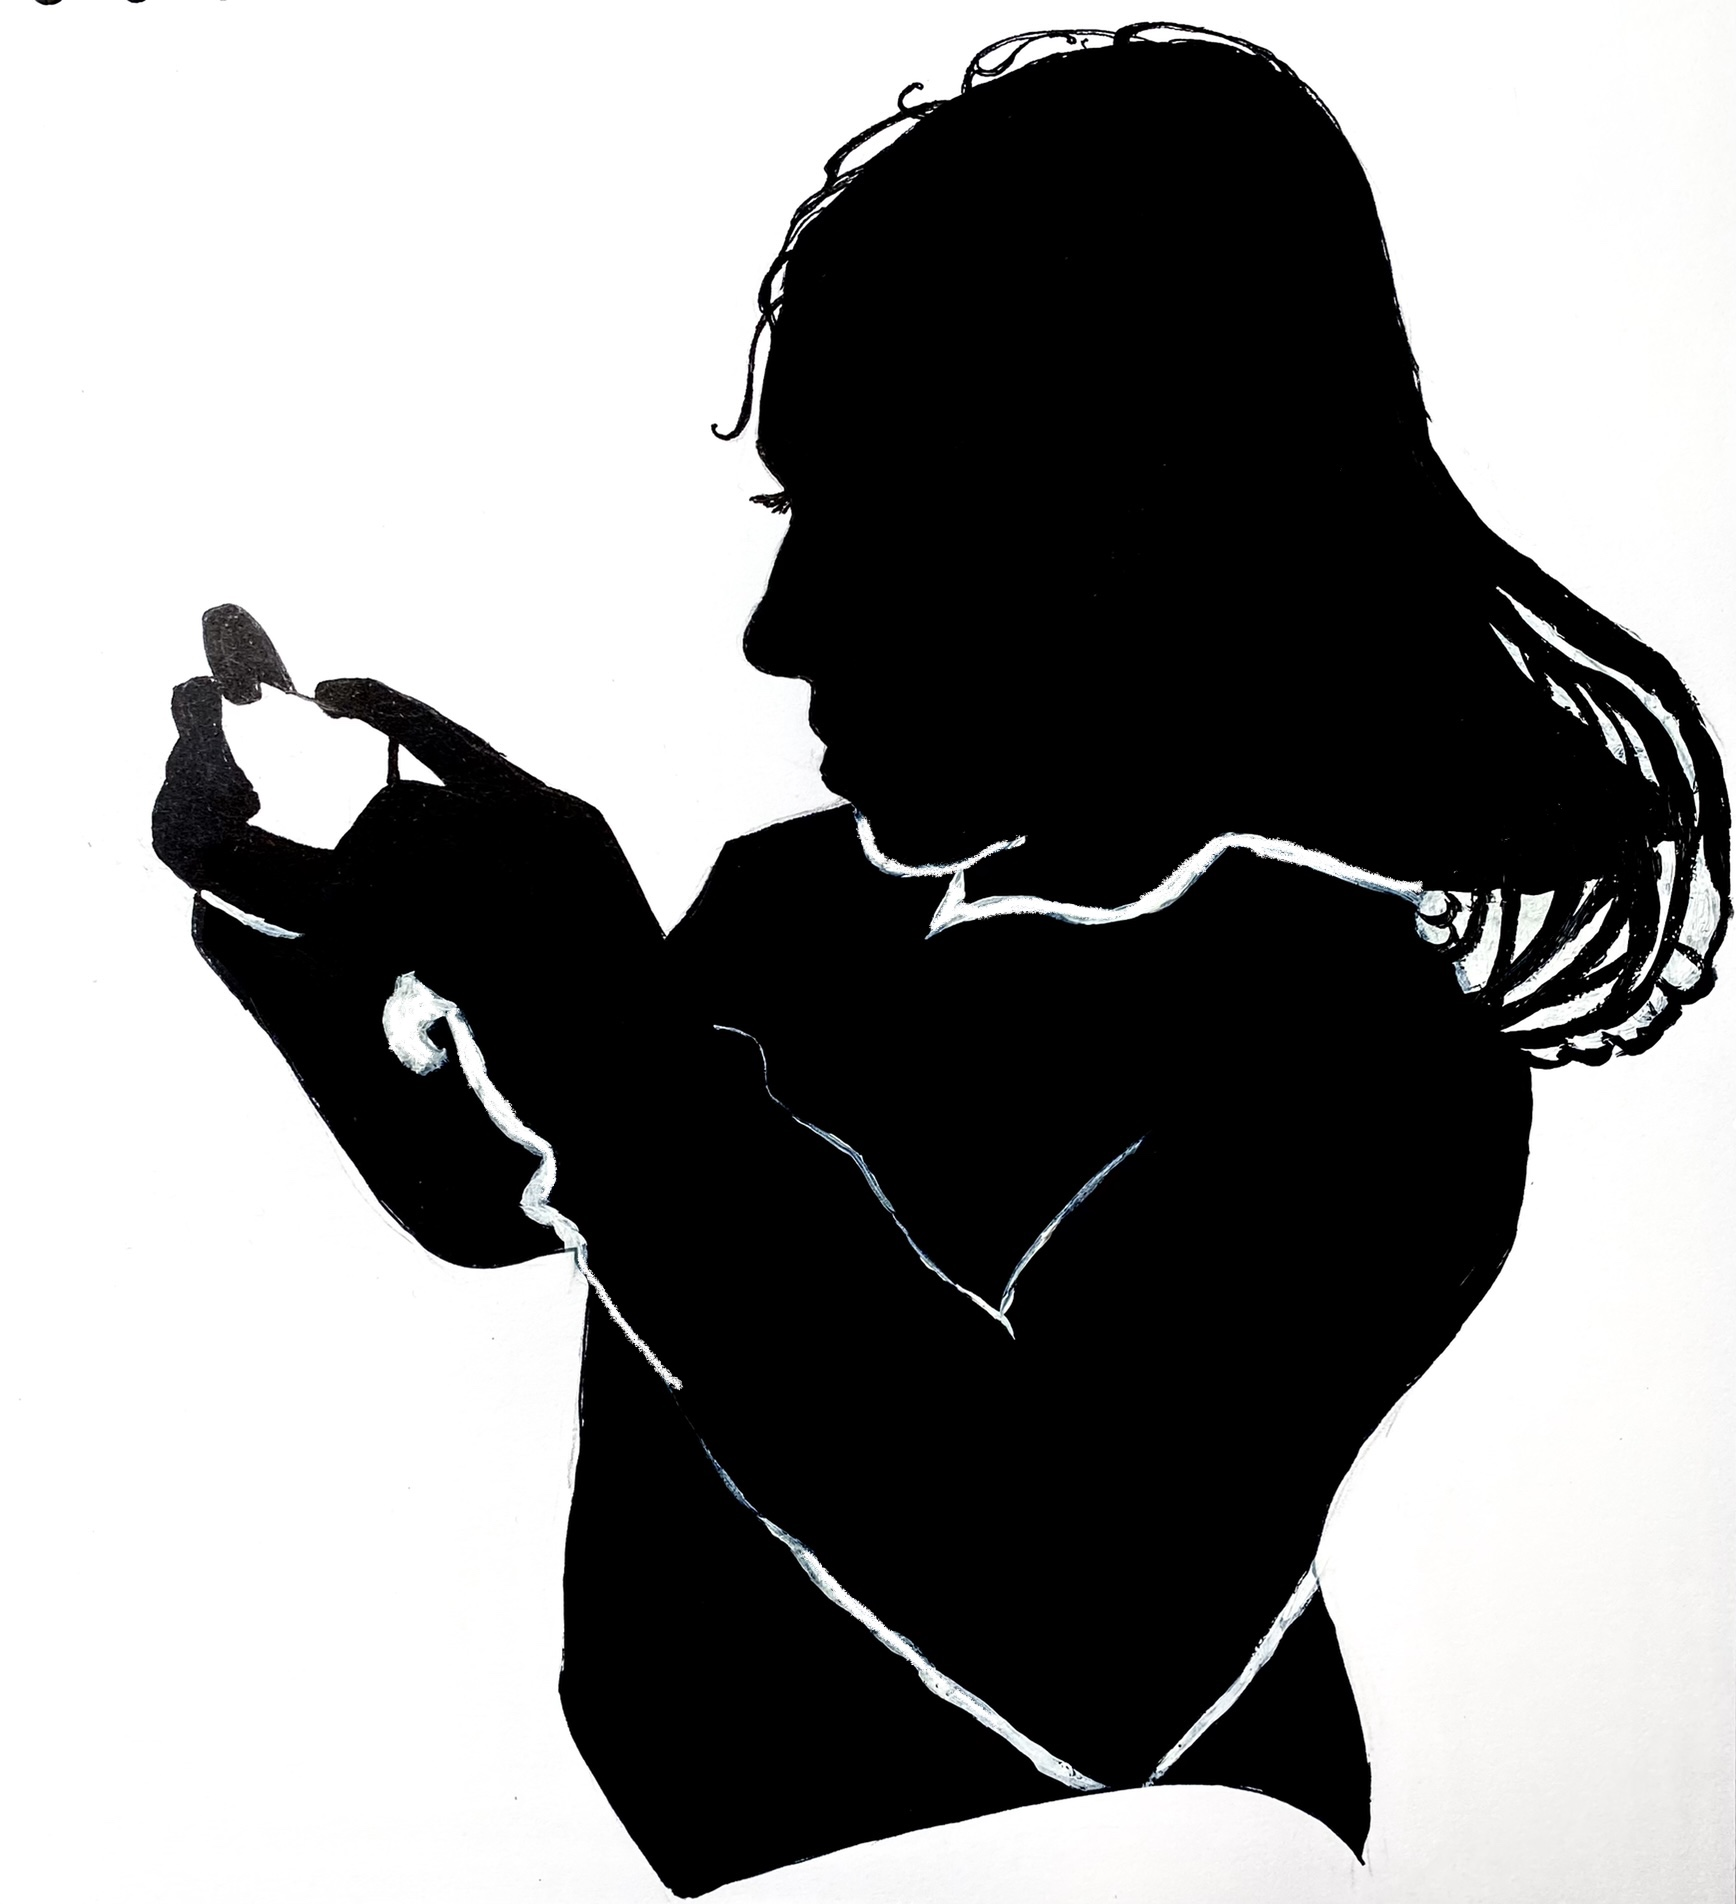 Learn the art of portrait silhouette with Wets Midlands artist and art tutor